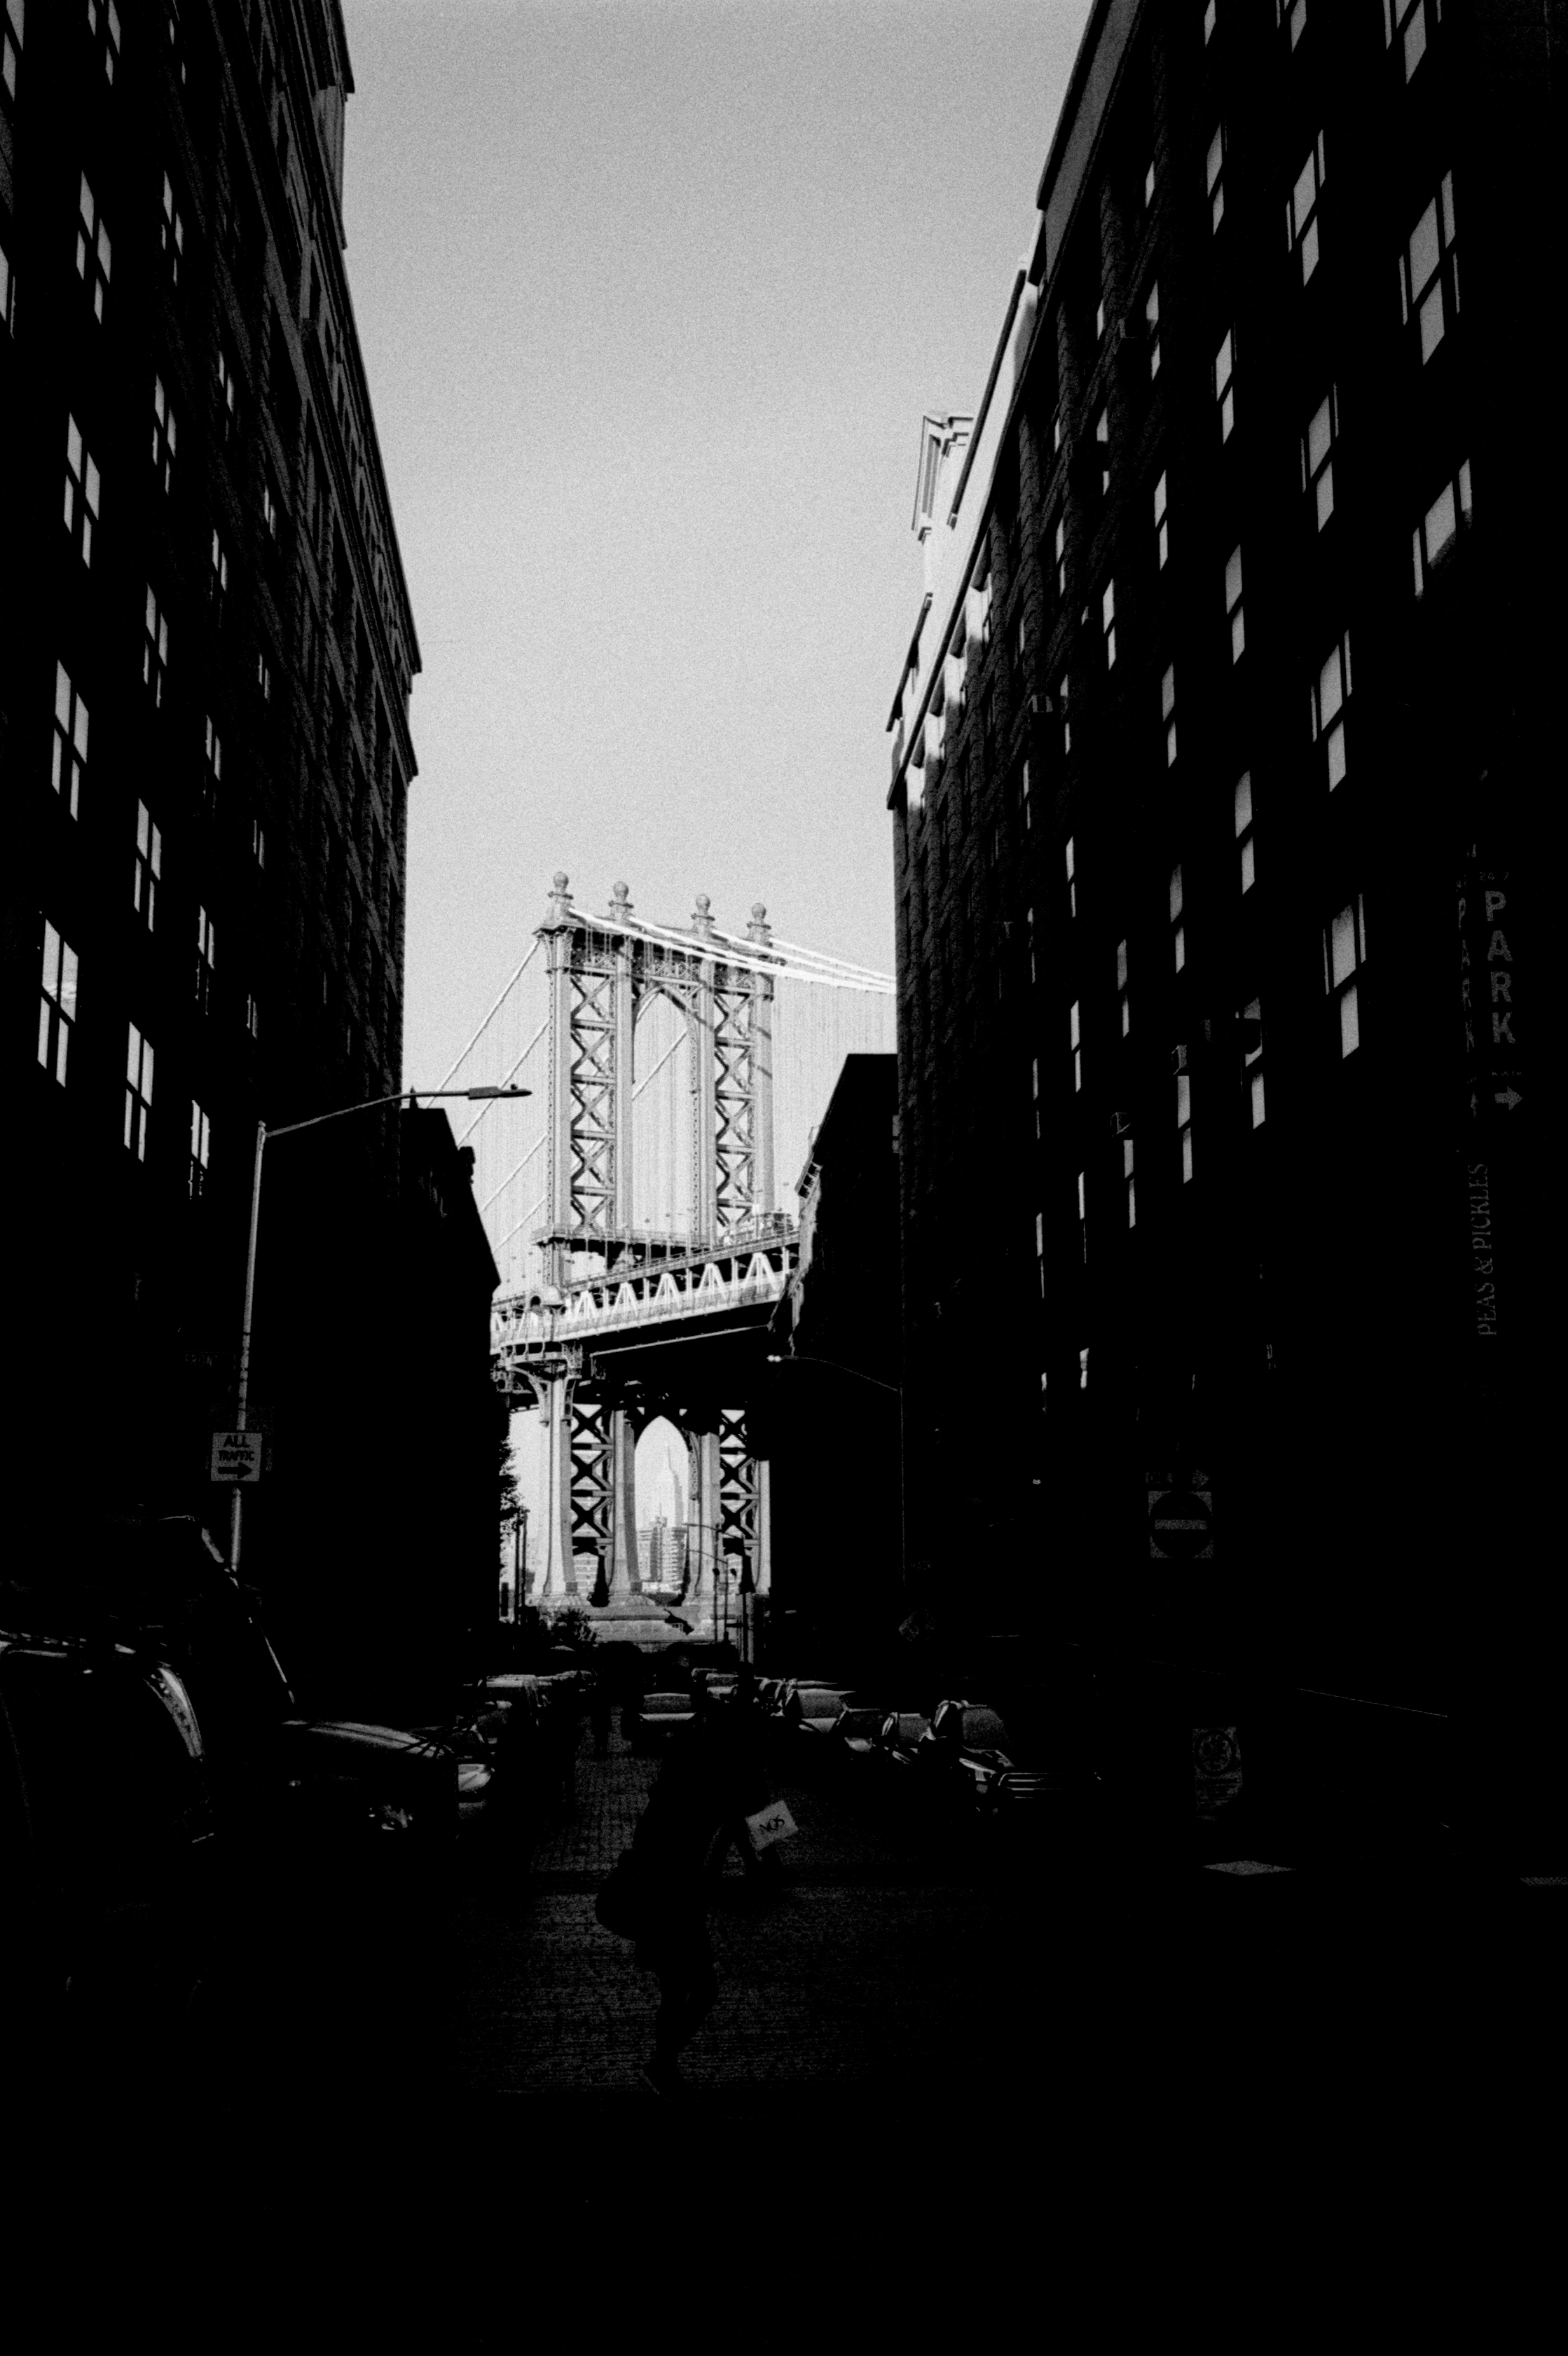 New_York_City_Brooklyn_Bridge_35mm_Scan.jpg